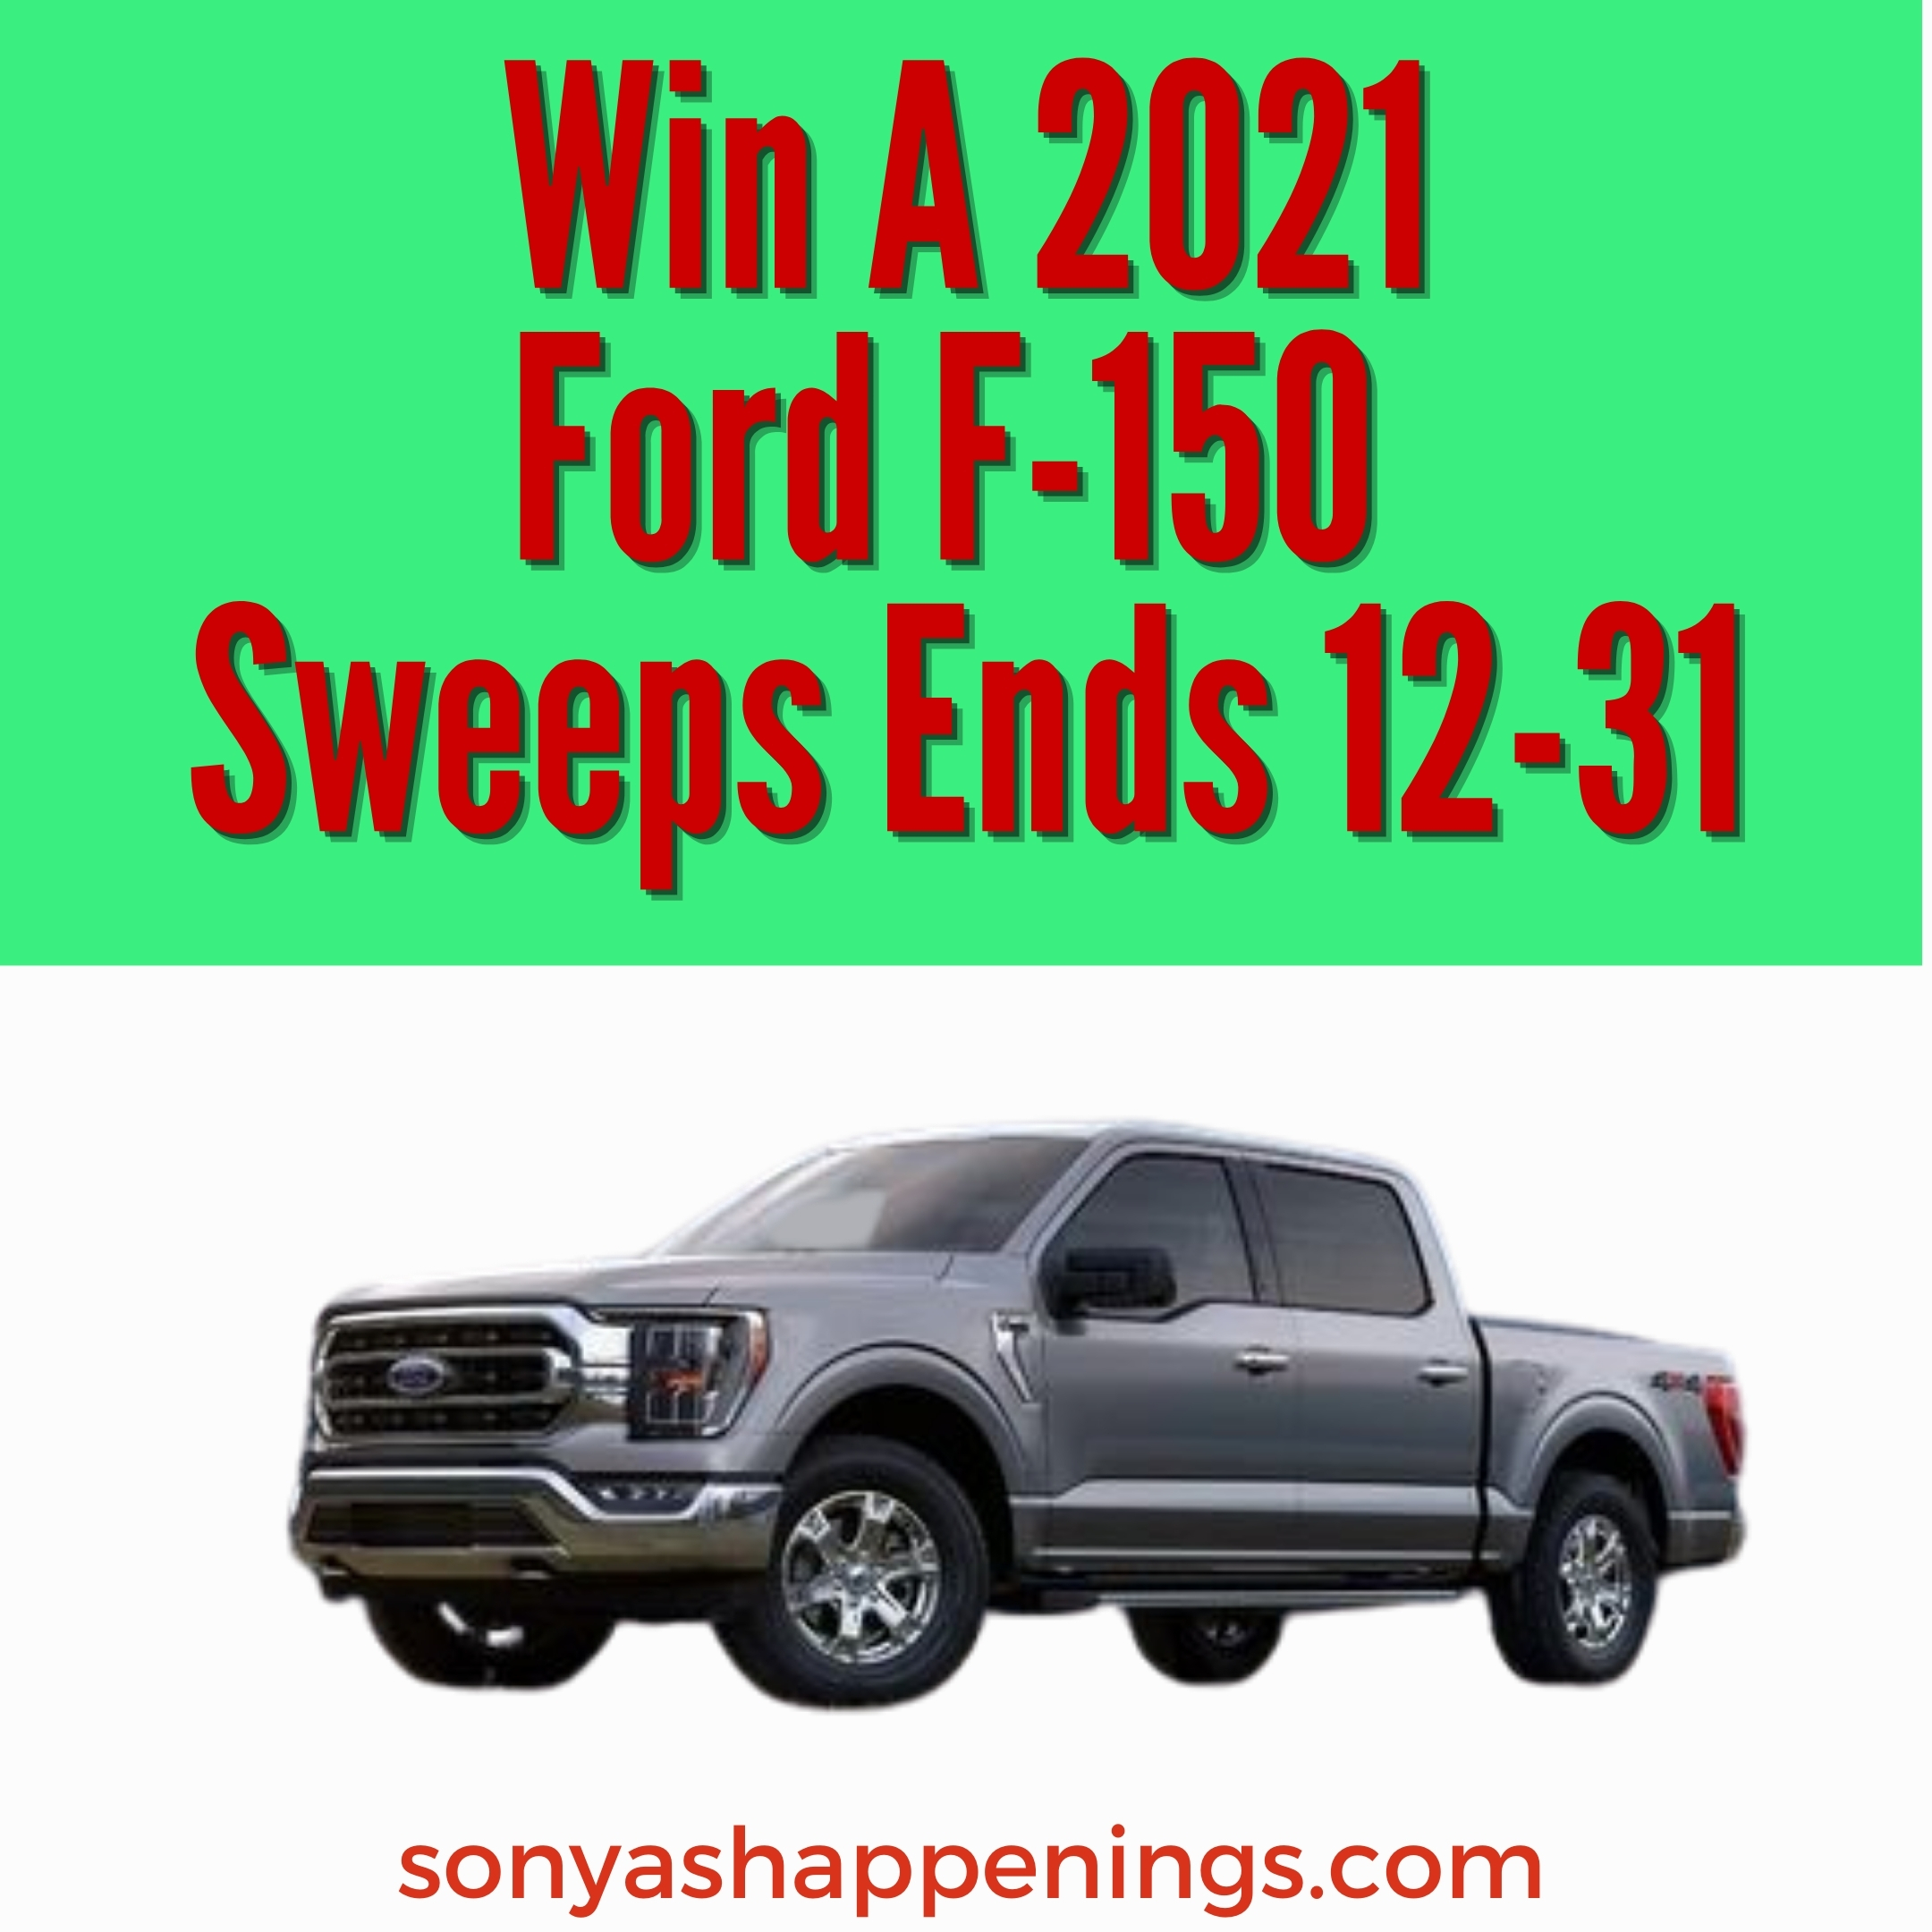 Win a 2021 Ford F-150 ~ sweeps ends 12-31